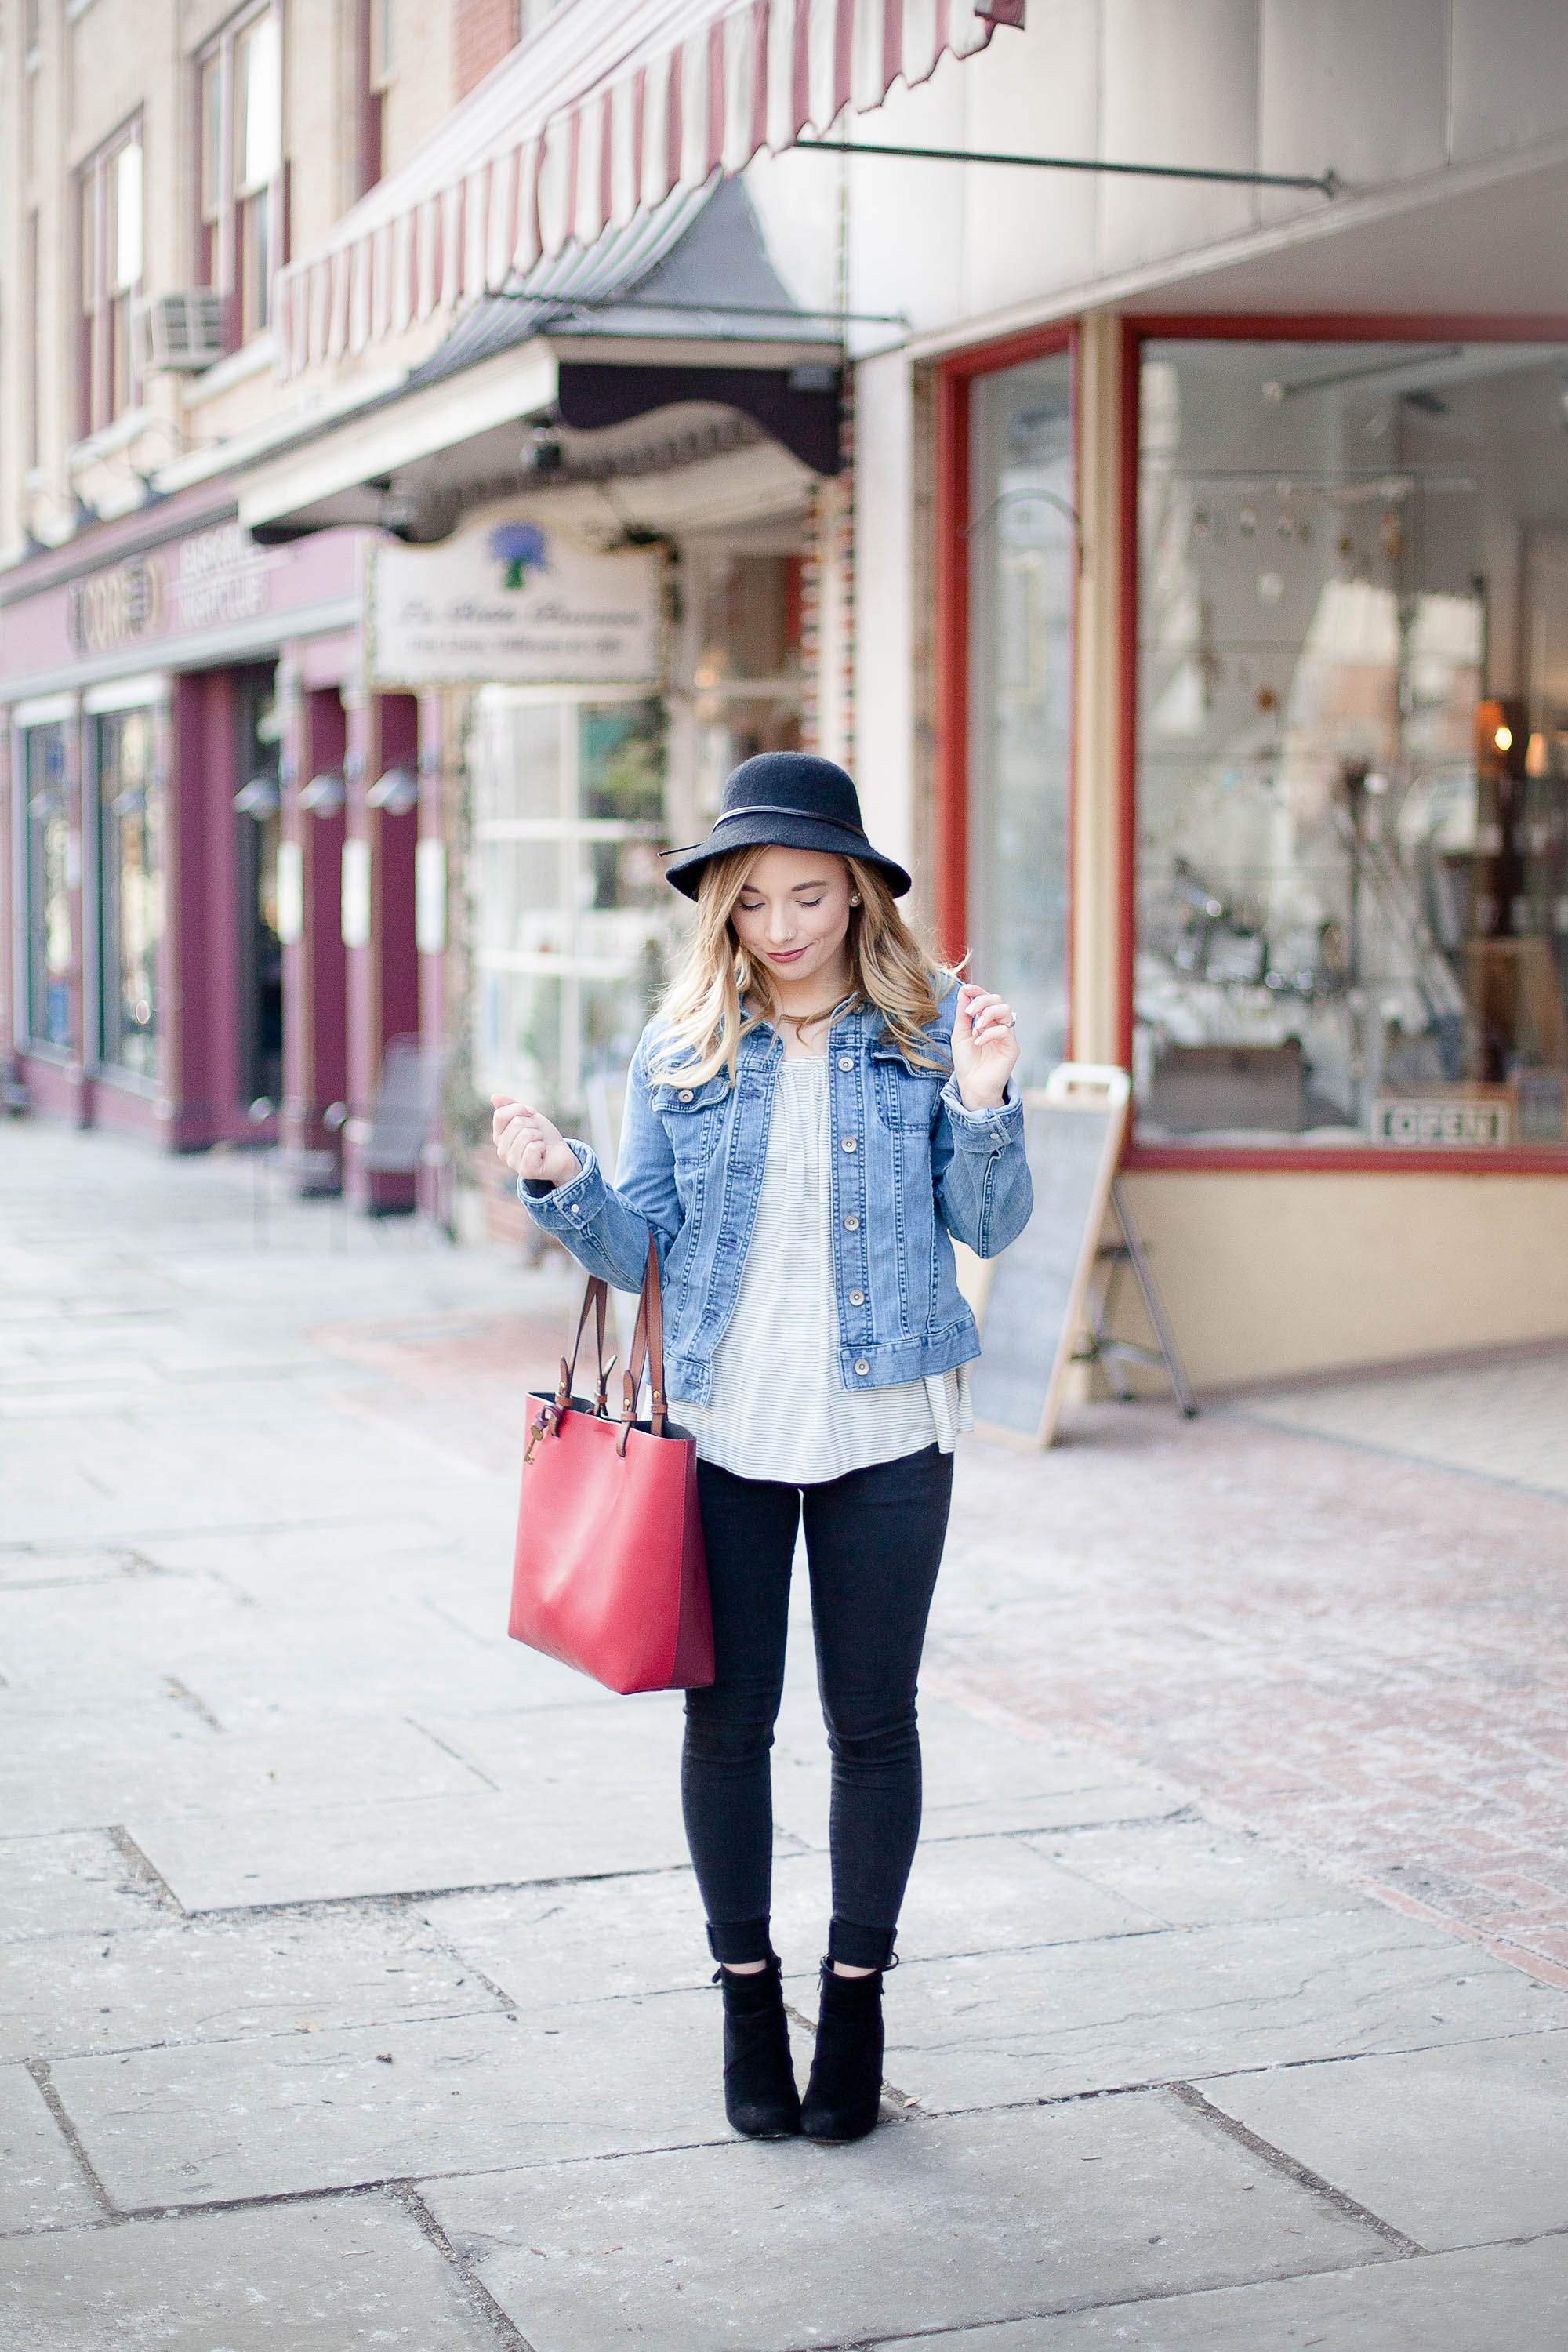 Casual & Classy Downtown Outfit